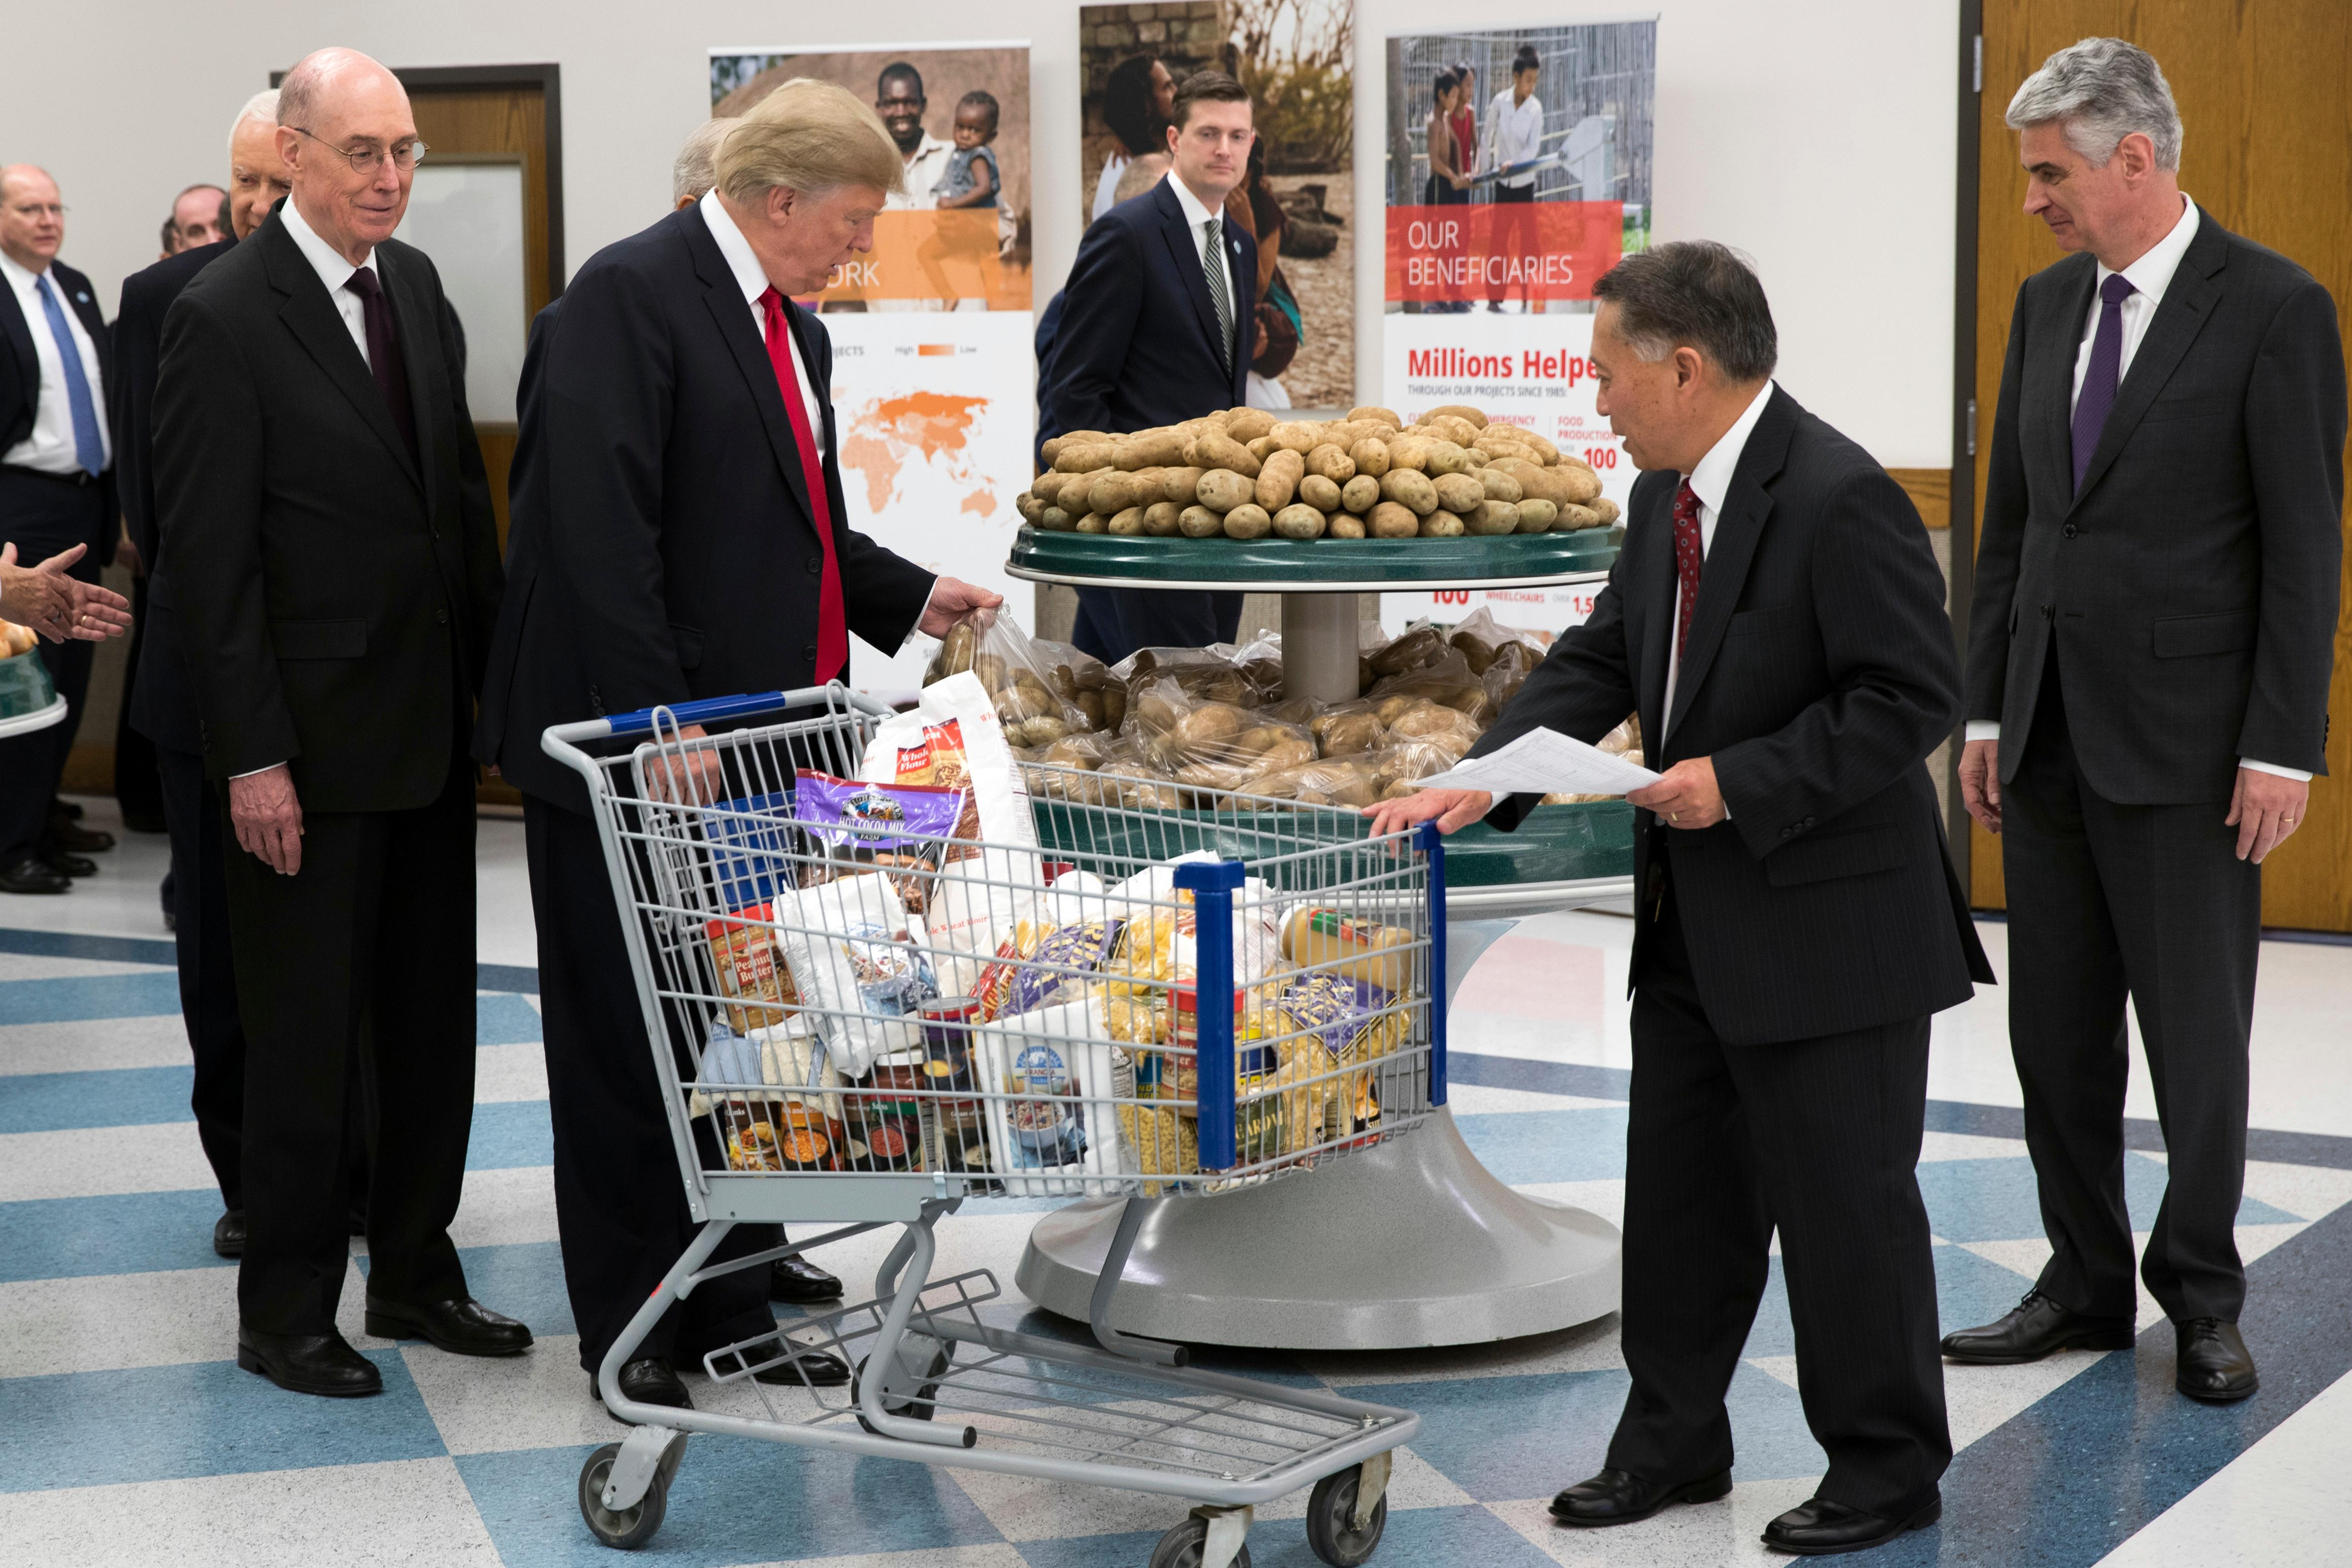 President Donald Trump lifts a bag of potatoes as he  tours the Church of Jesus Christ of Latter-Day Saints Welfare Square food distribution center, Monday, Dec. 4, 2017, in Salt Lake City. (AP Photo/Evan Vucci)